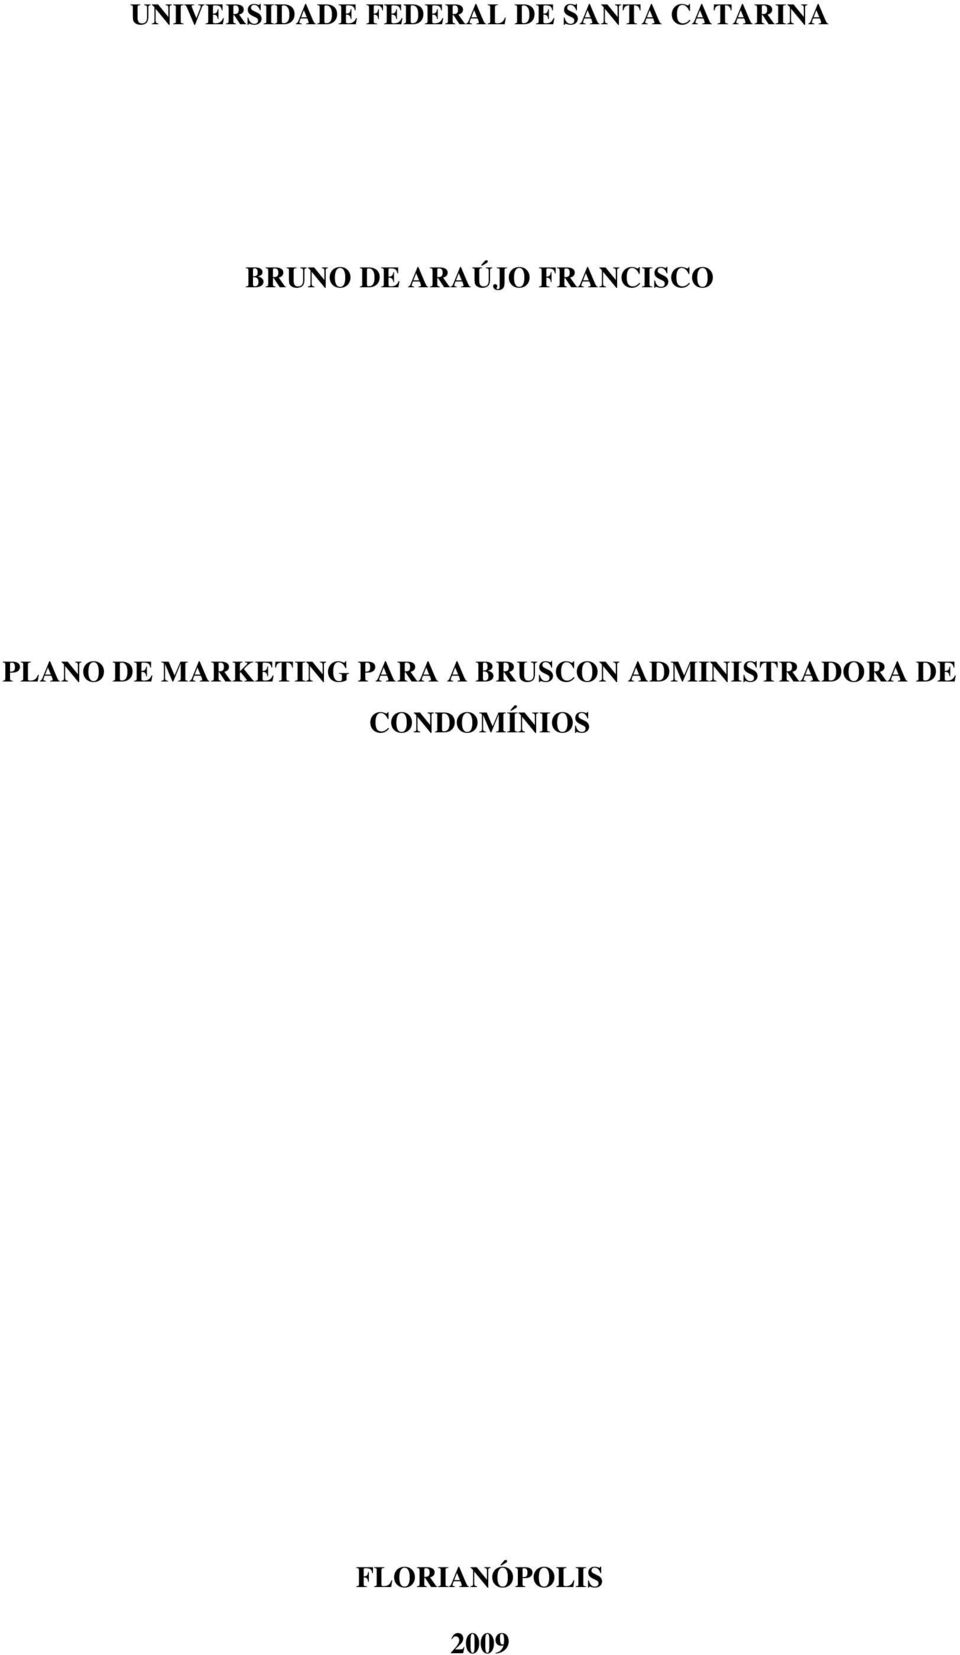 PLANO DE MARKETING PARA A BRUSCON